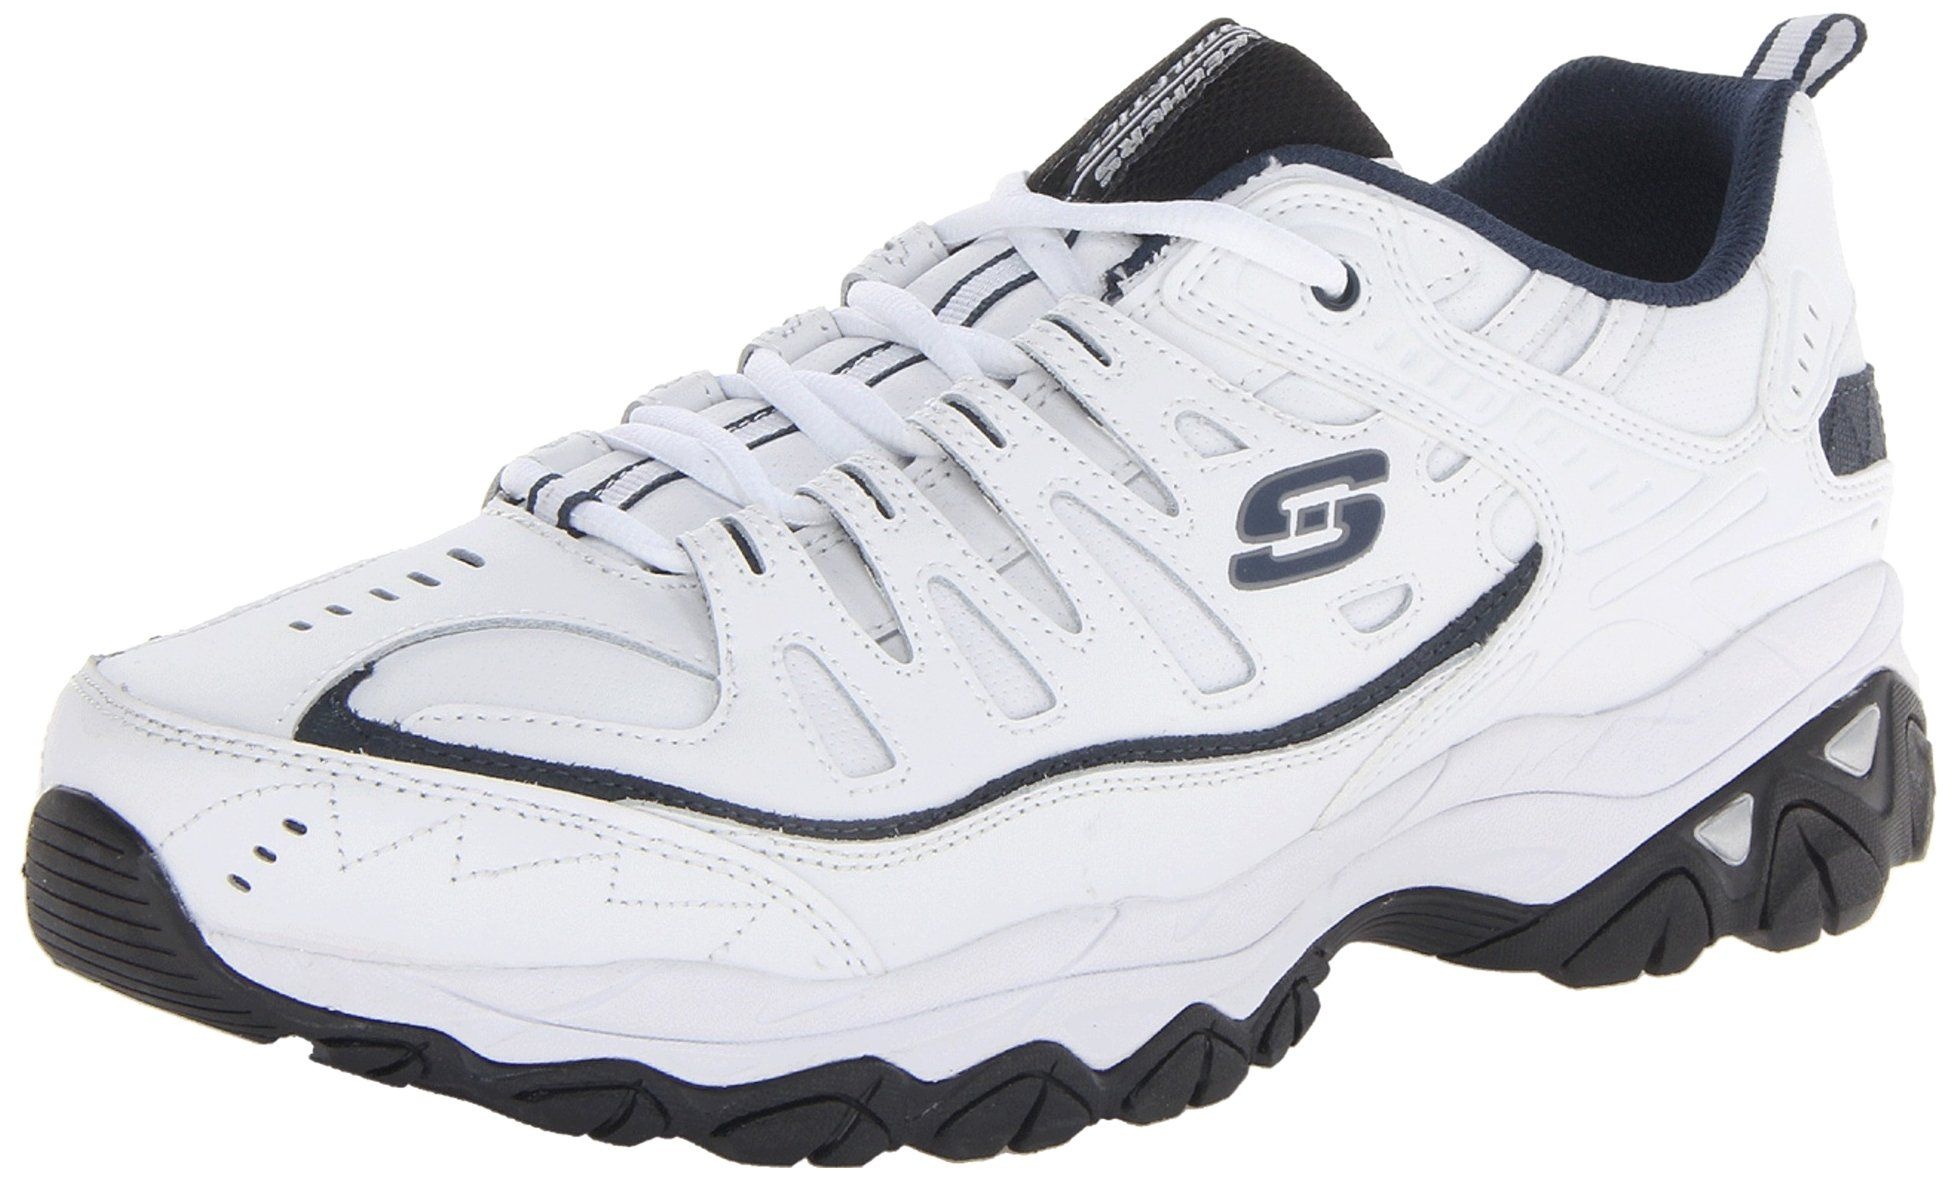 Skechers Sport Men's Fit Reprint Oxford,White/Navy,10 M US. Walking